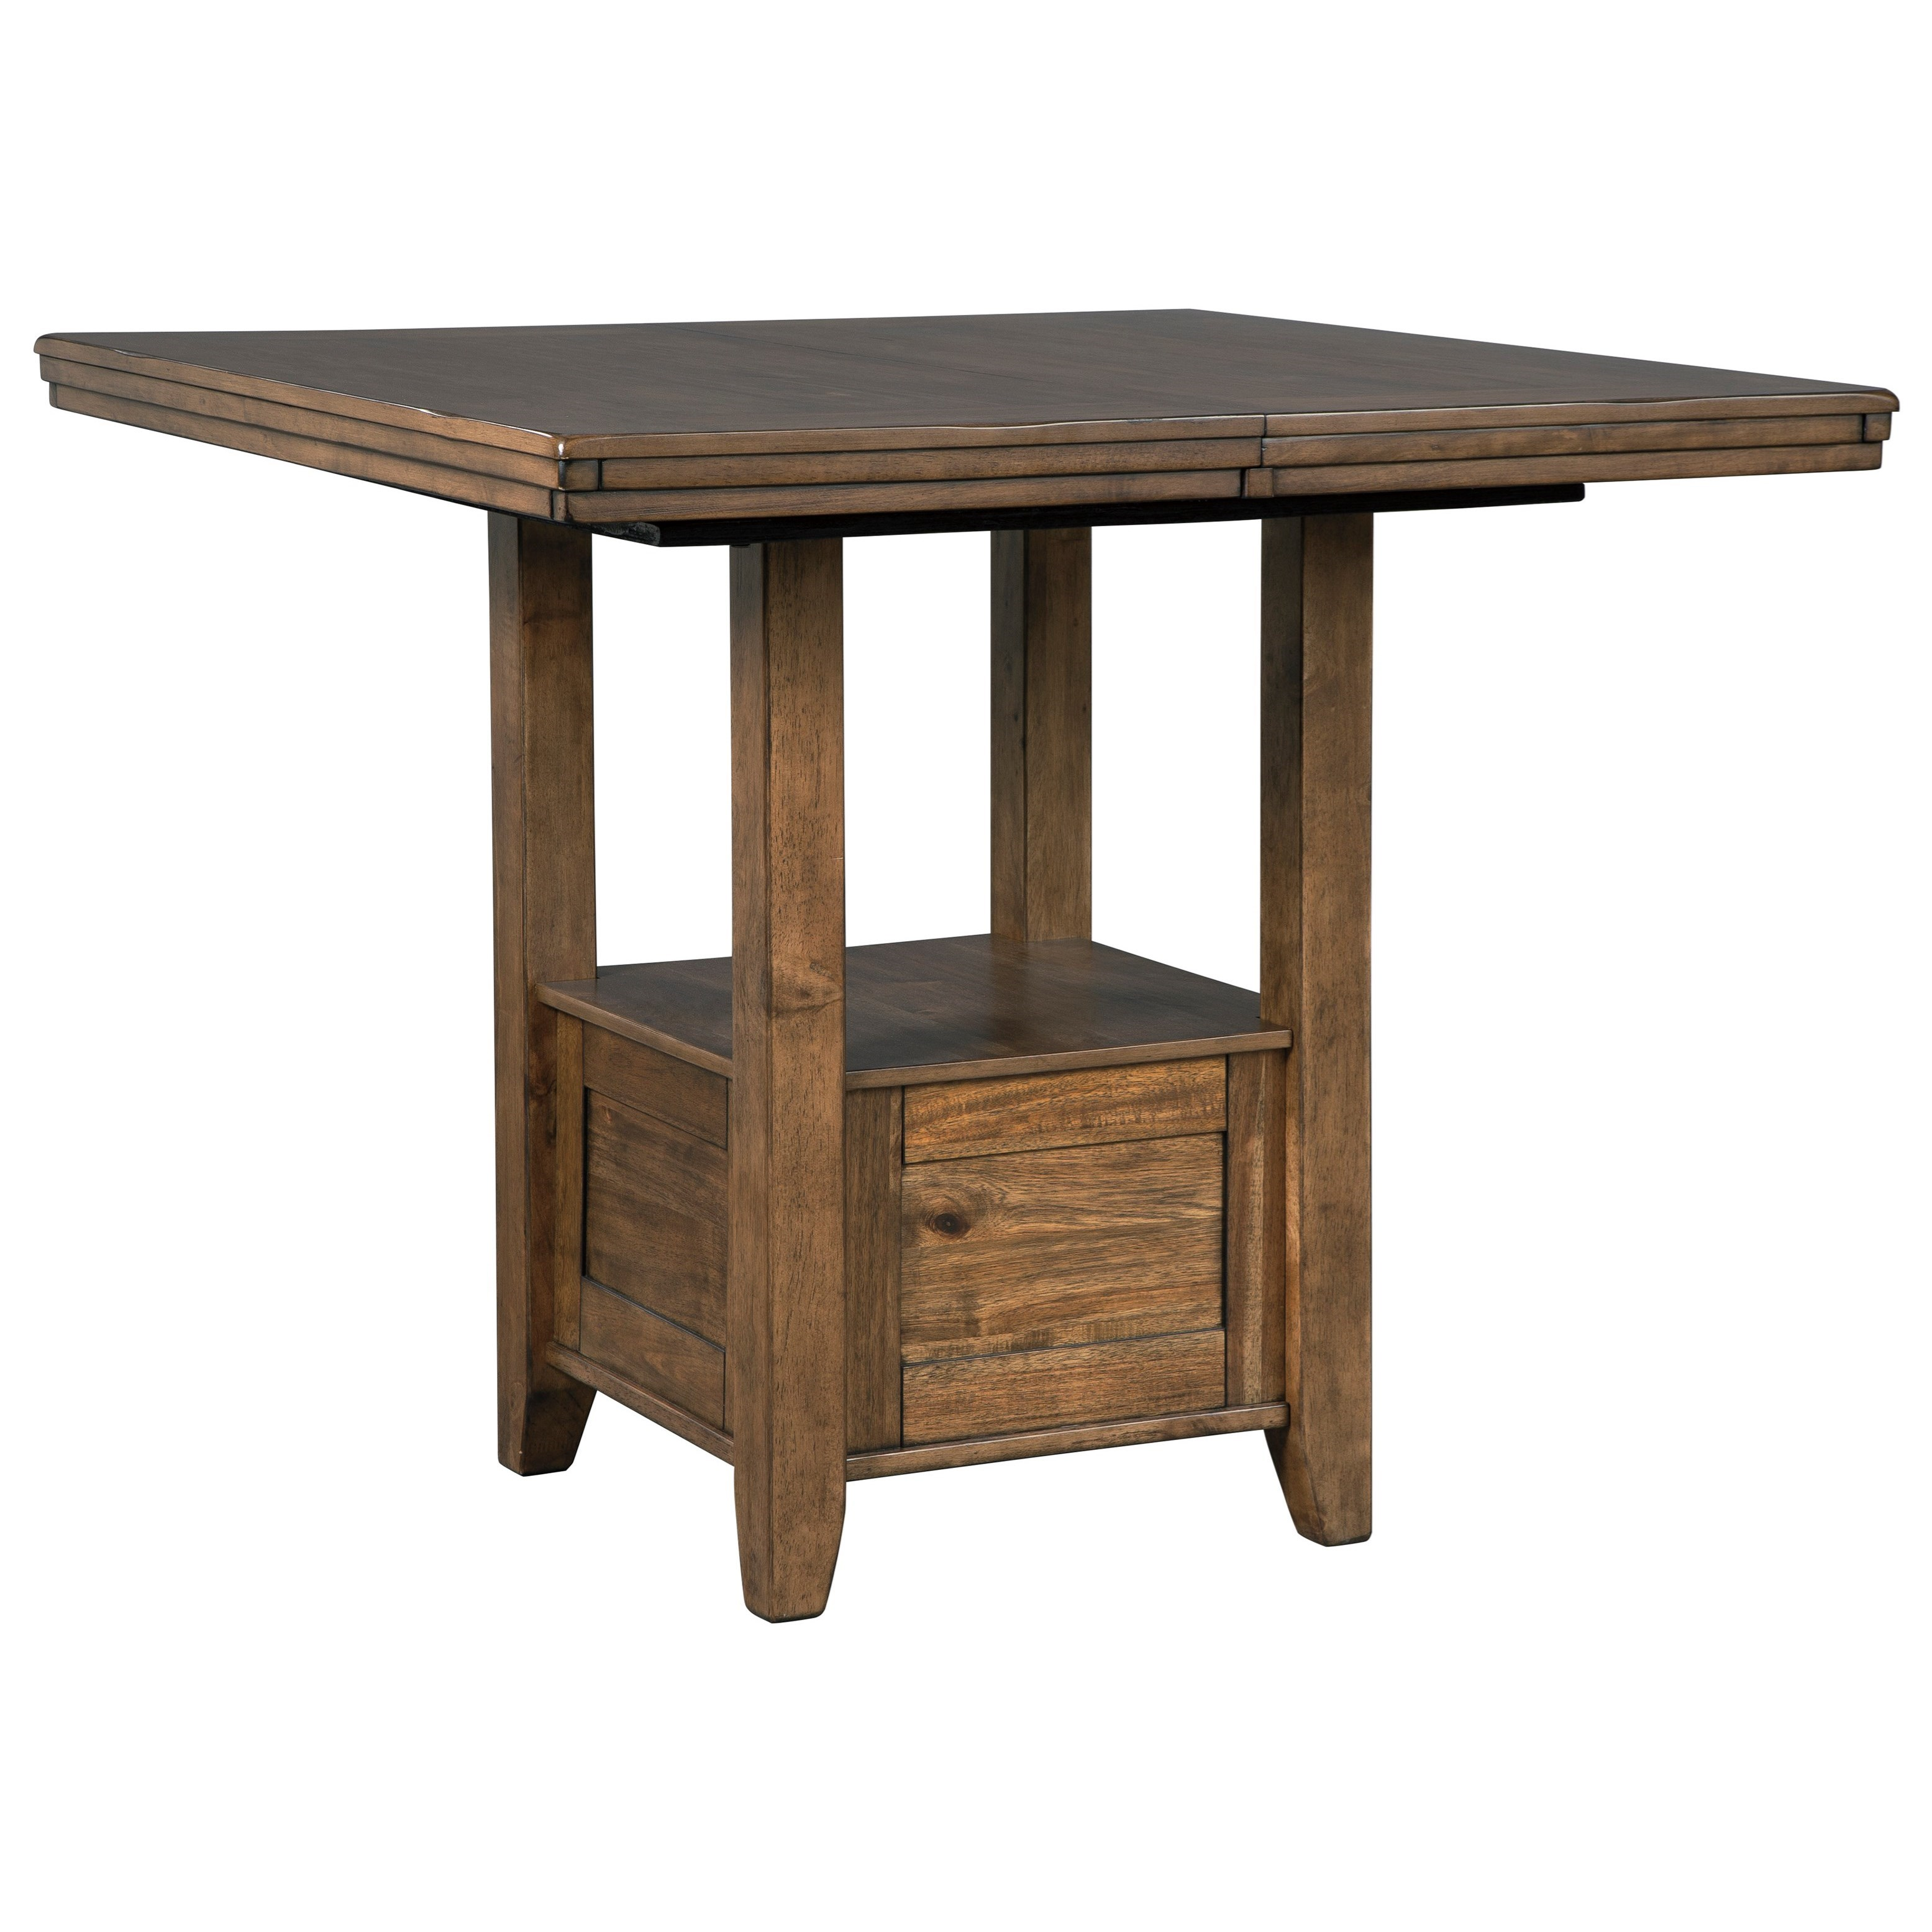 Flaybern Rectangular Counter Table by Benchcraft at Walker's Furniture